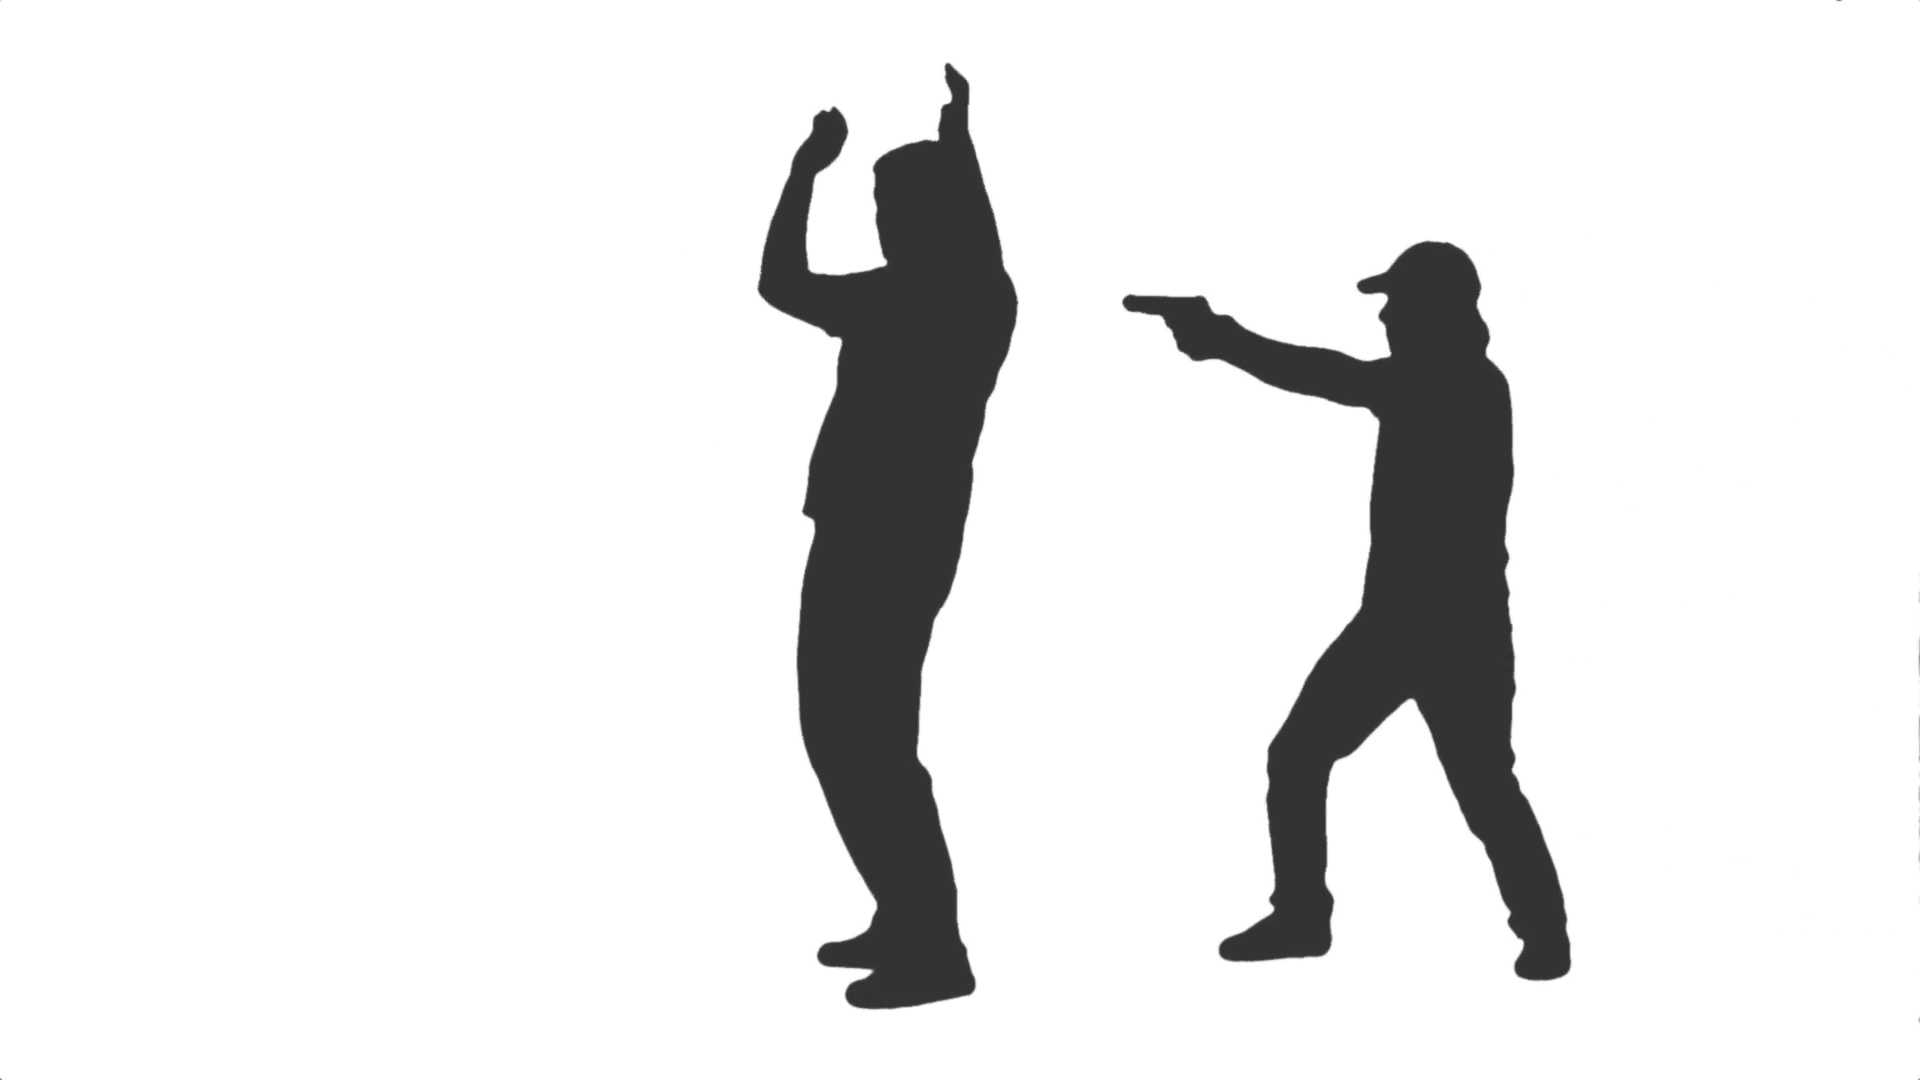 1920x1080 Silhouette Of A Male Person Arrested By Police Officer. Side View